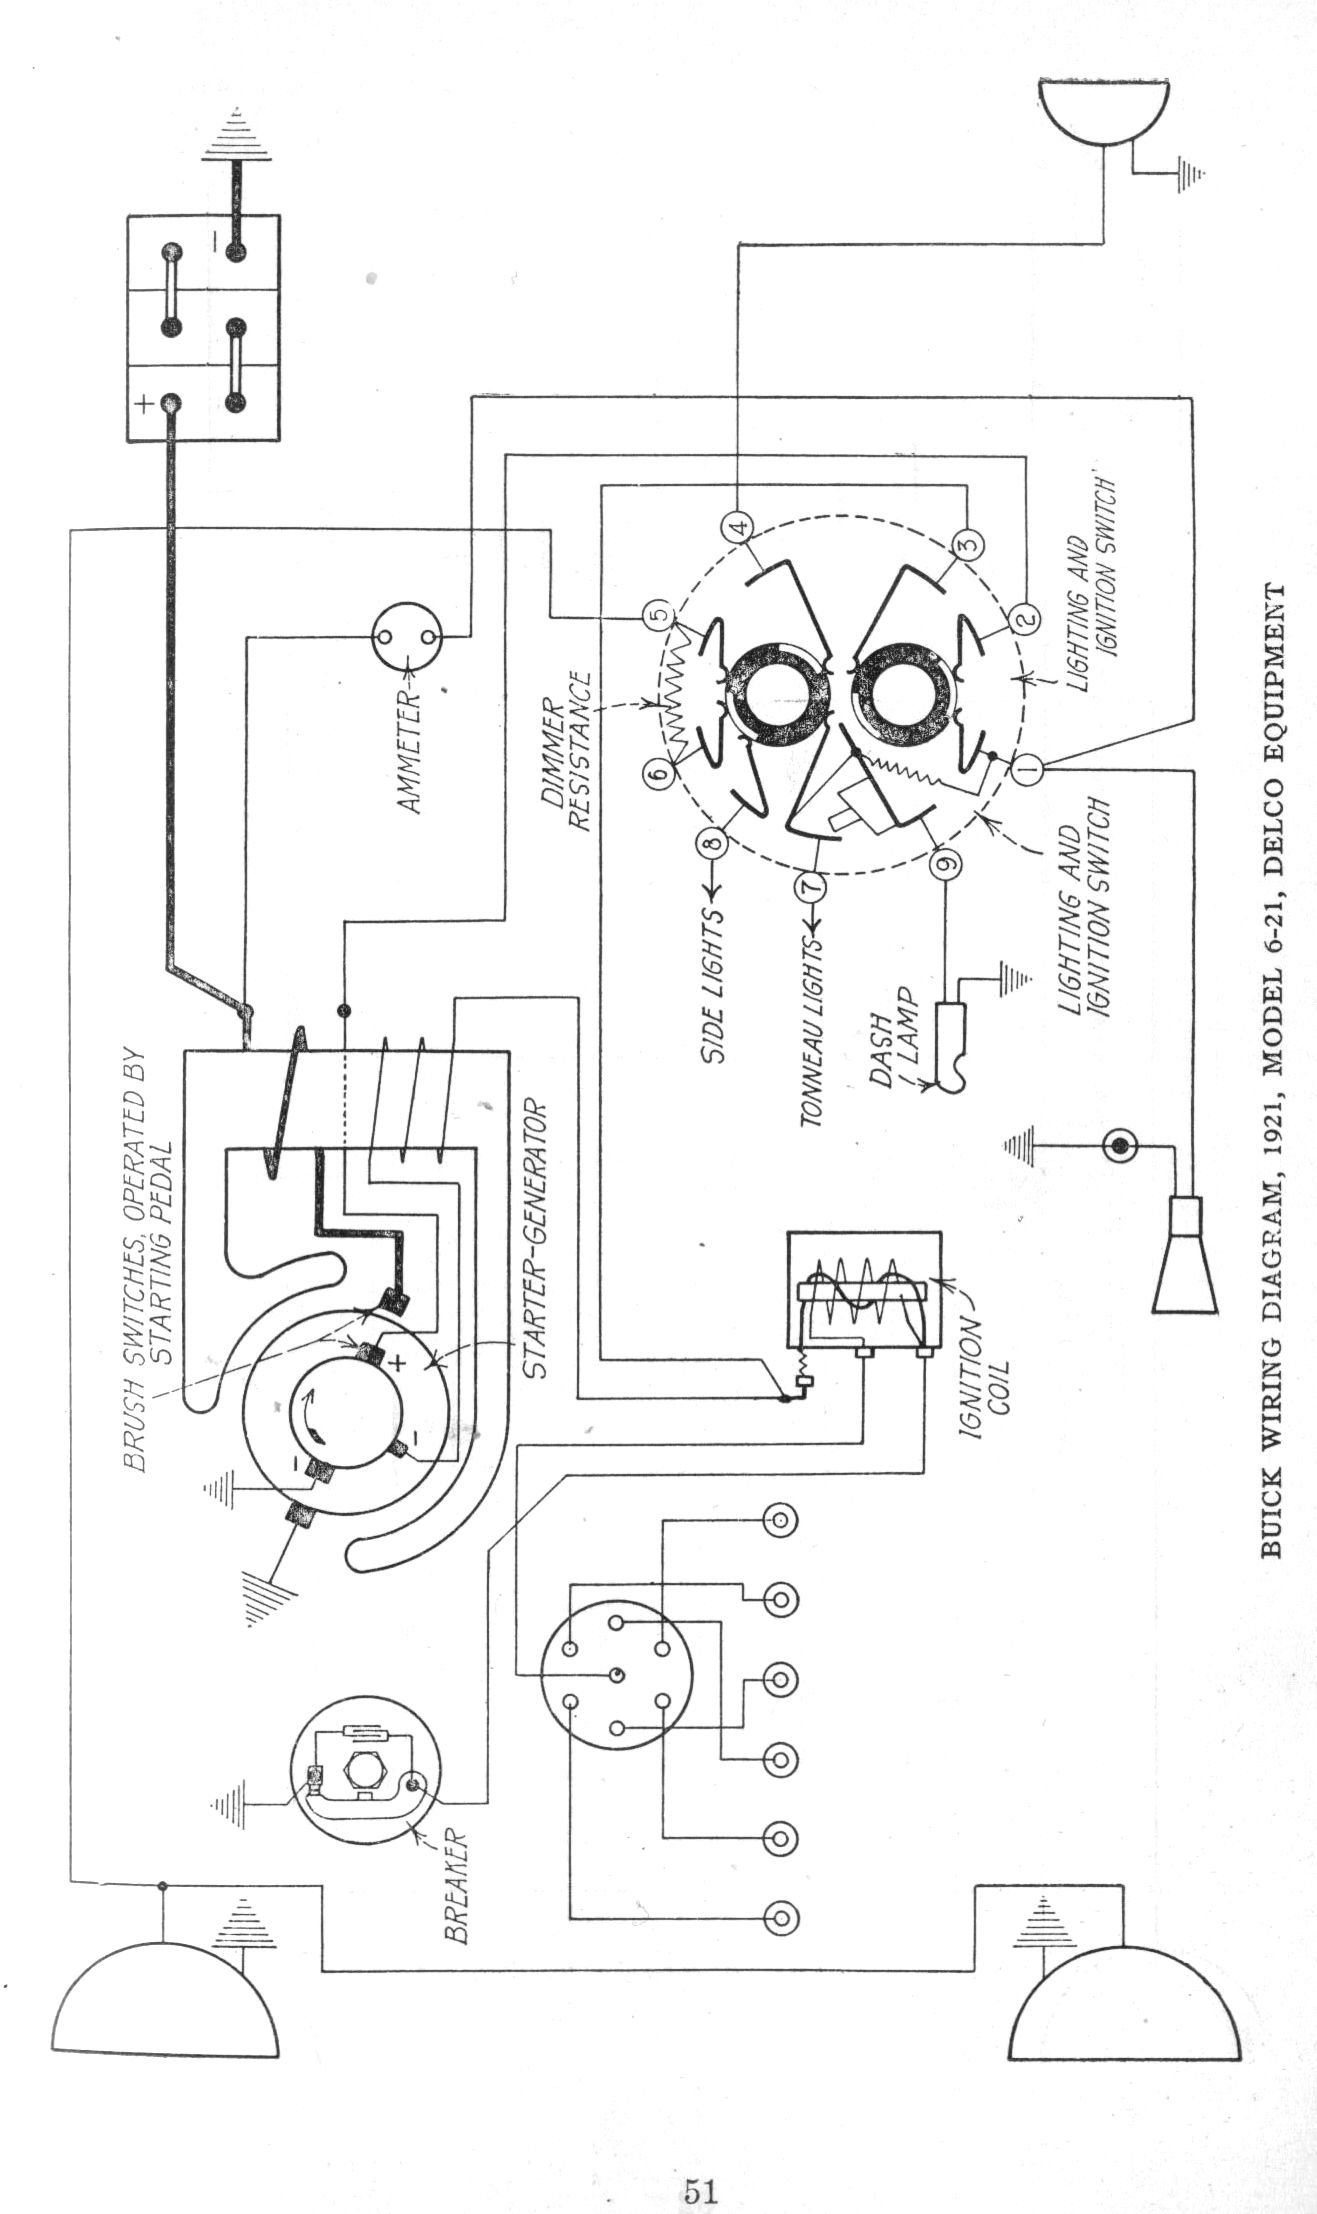 car electrical wiring diagrams with 1920s on Wiring Diagram For Electric Chain Hoist in addition Wiring Diagram Online as well RIMS Plumbing Schematic together with 2013 Peterbilt 379 Wiring Diagram in addition P 0900c152801ce6dd.